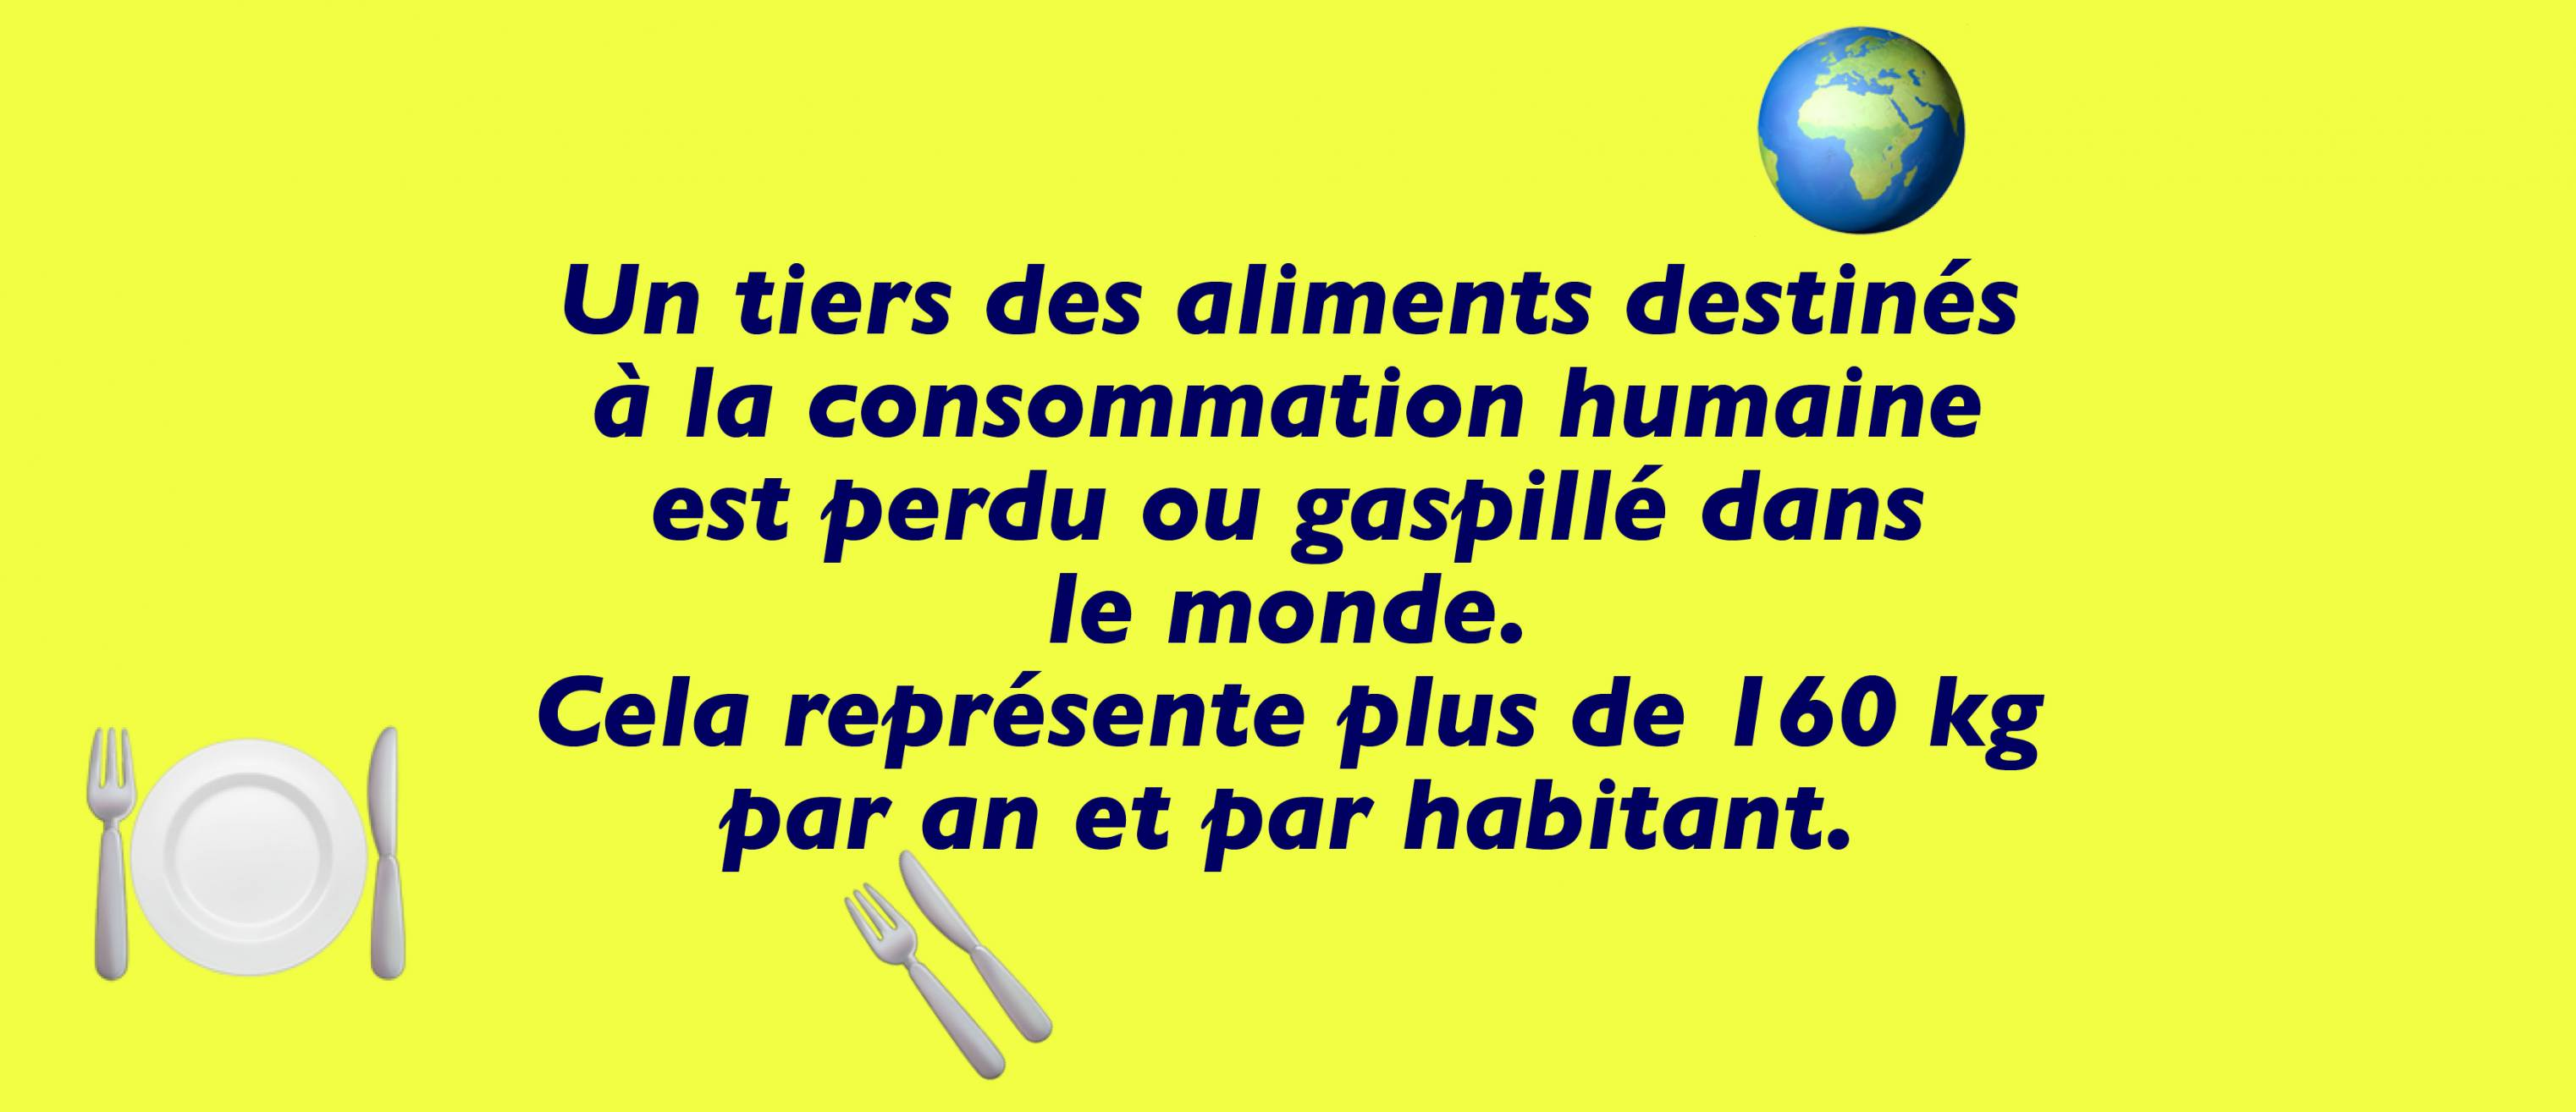 CaReveille-Gaspillage-Alimentaire